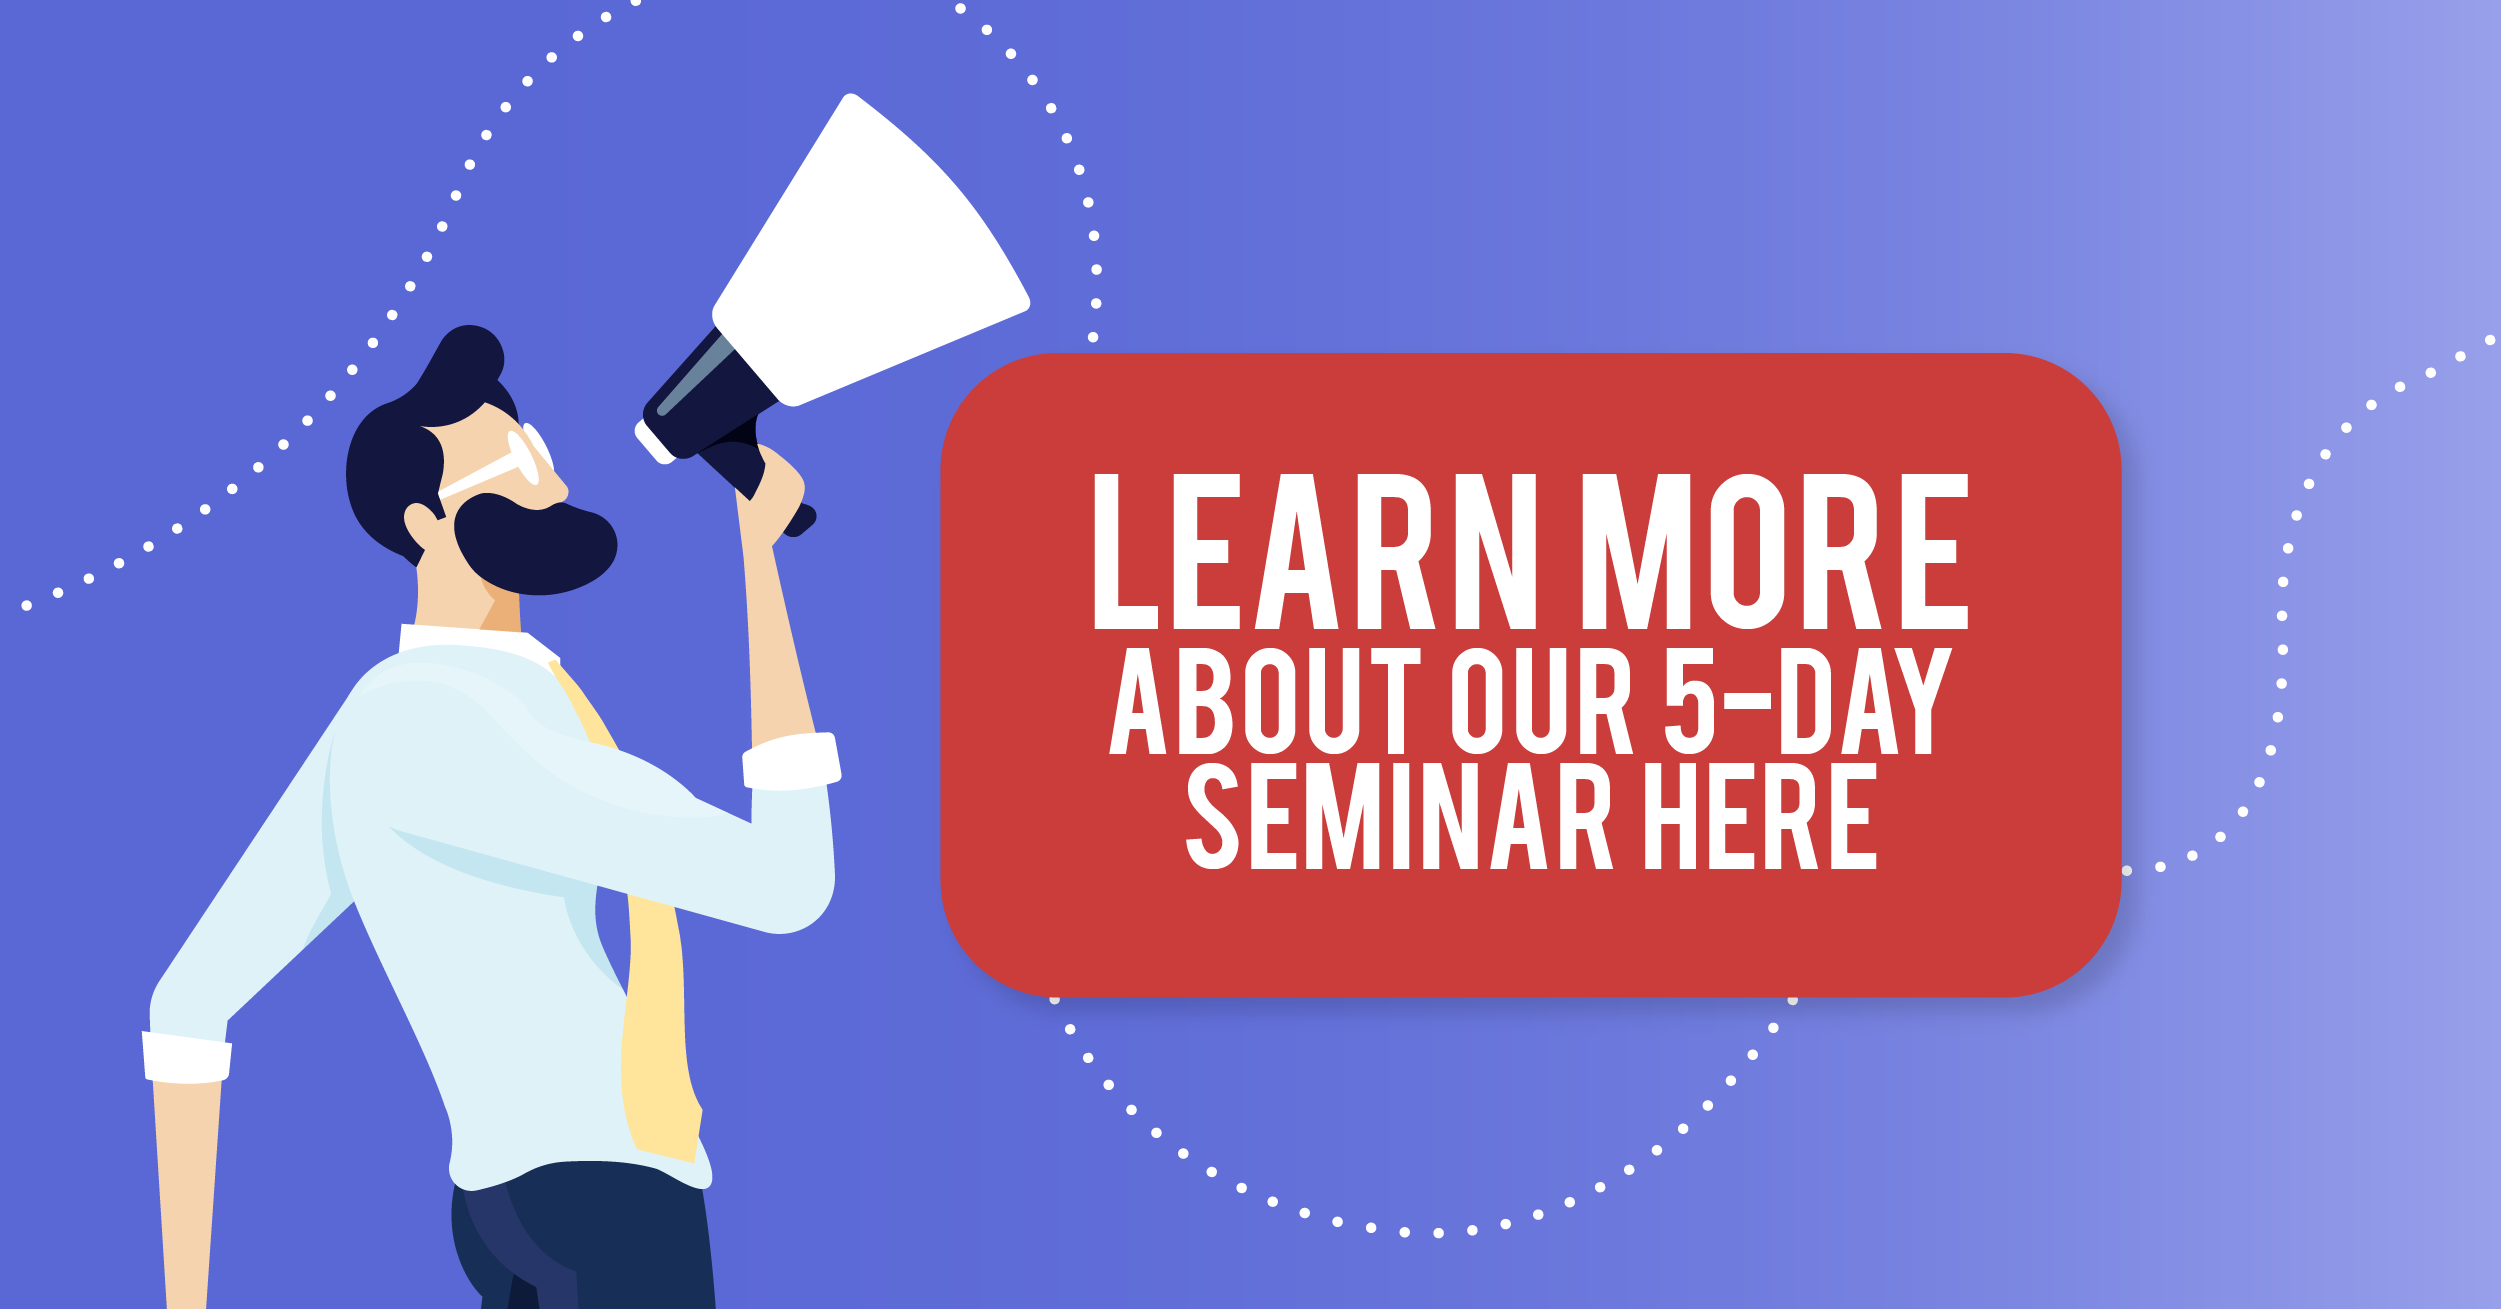 Learn more about our 5-day seminar here